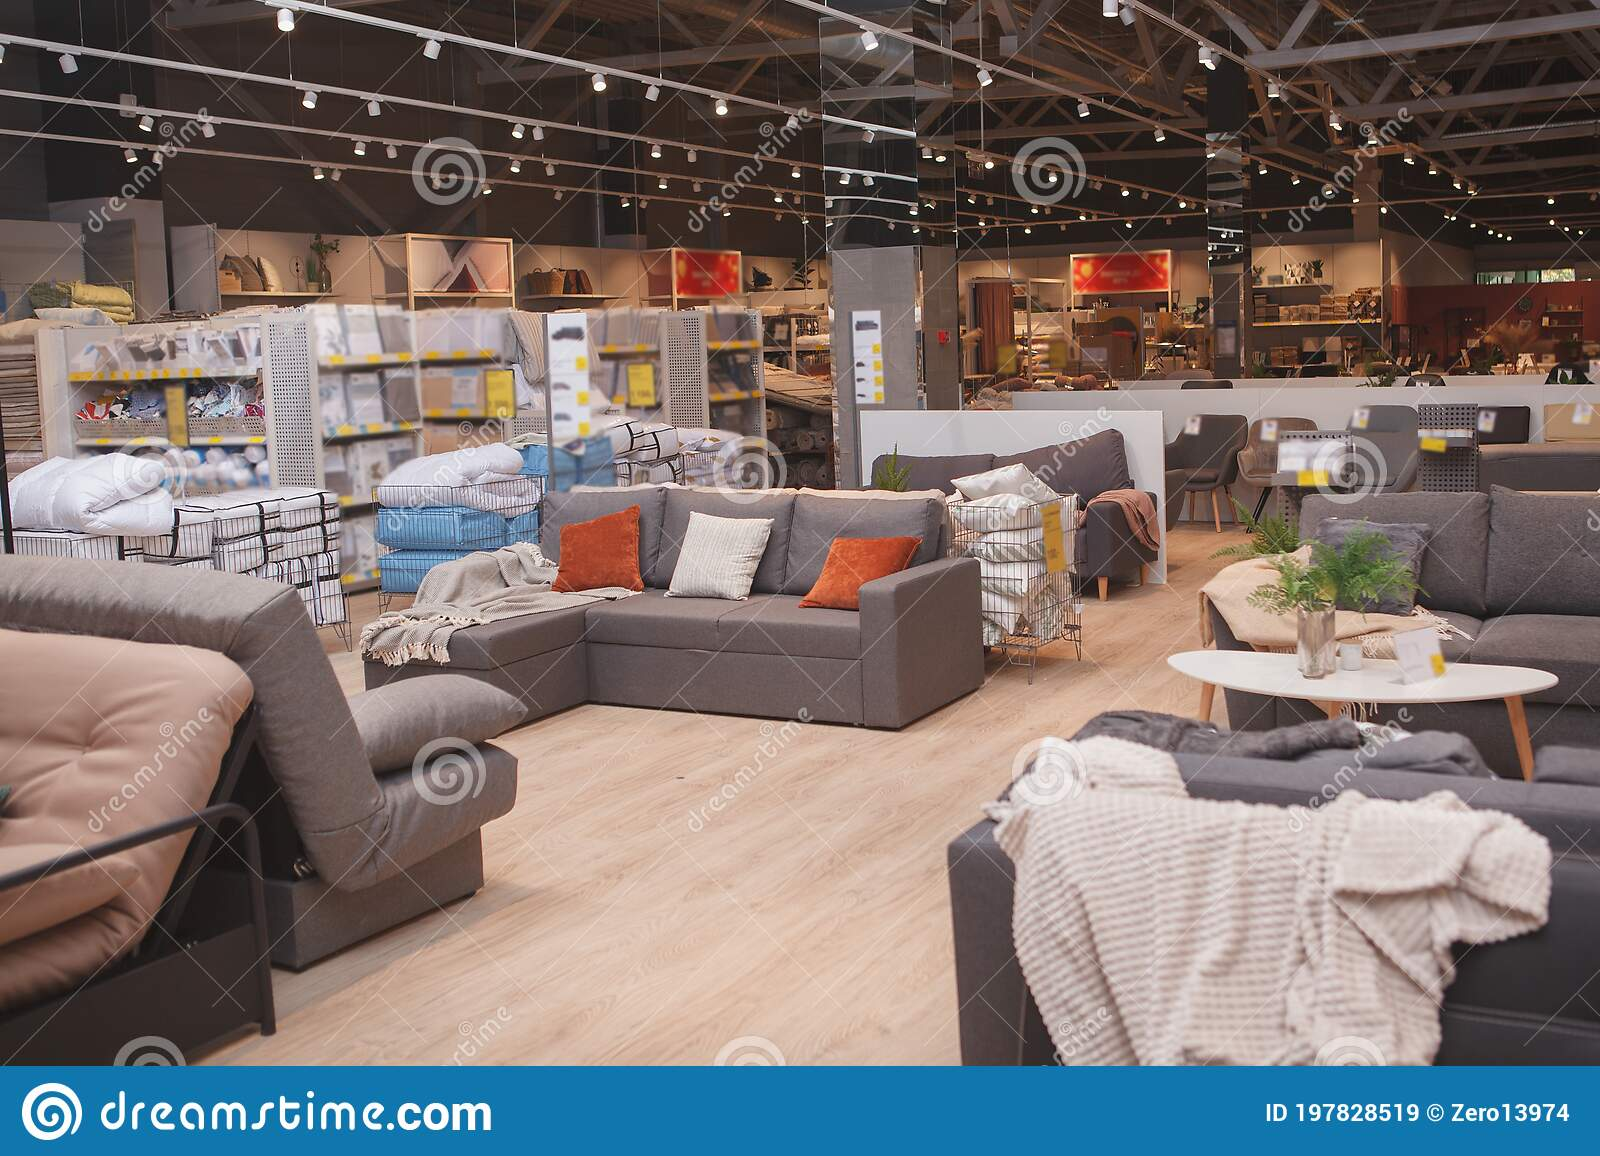 Furniture Store with Couches and Sofas on Sale Stock Image   Image ...